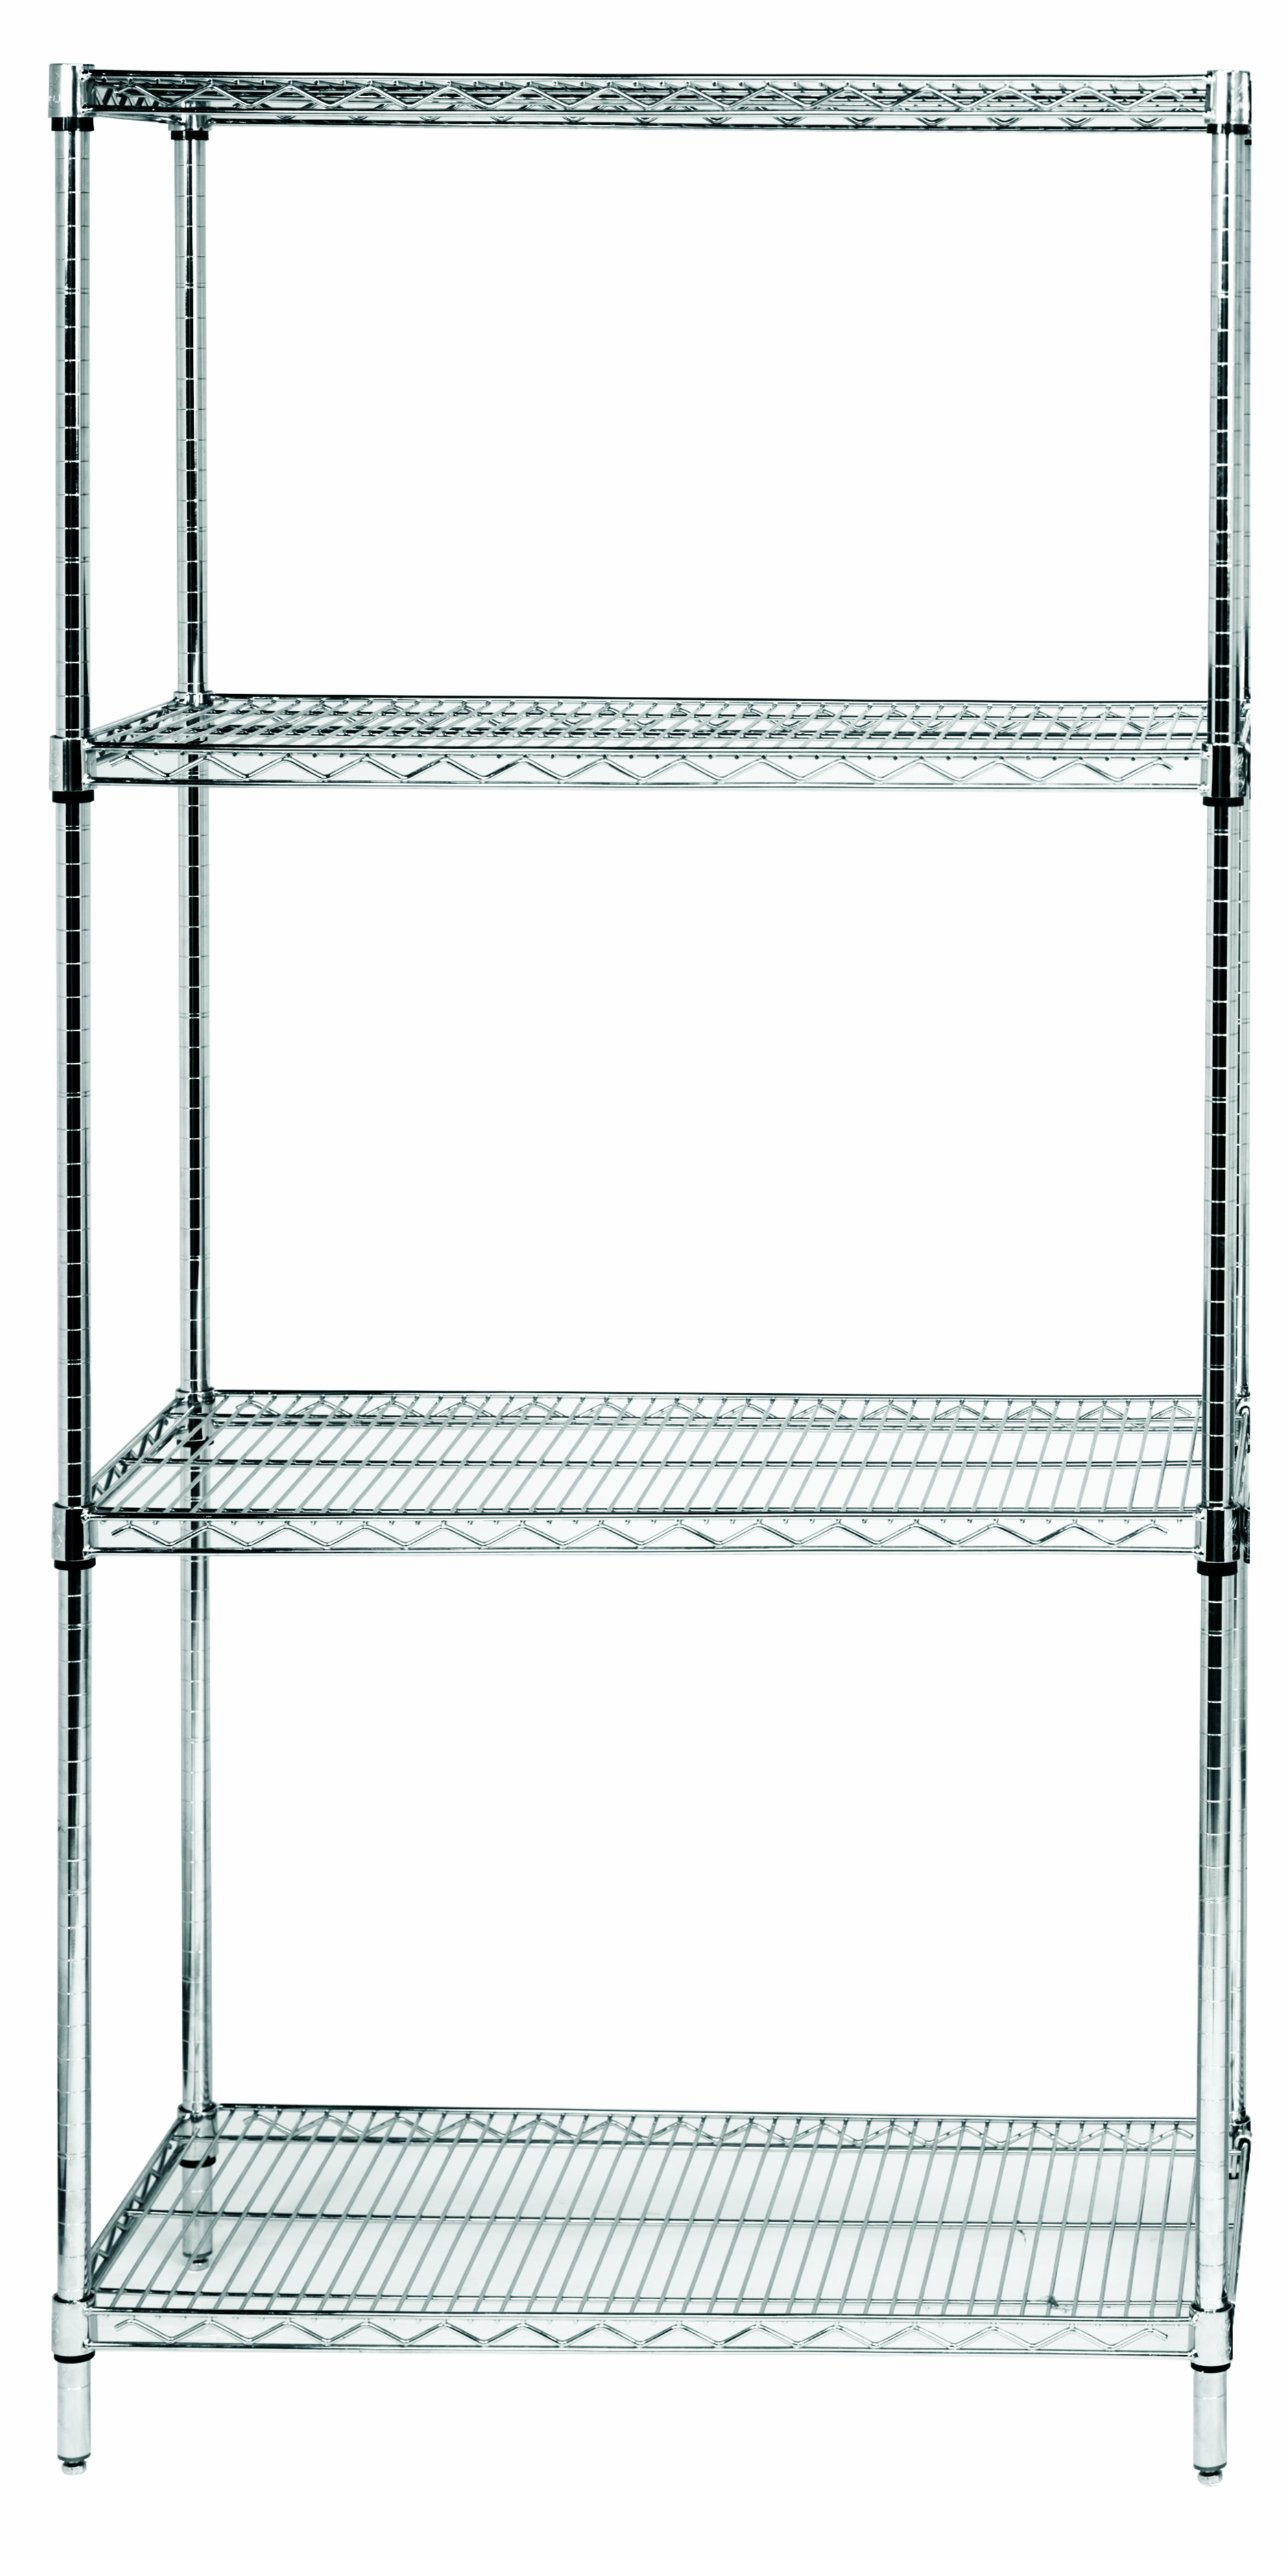 quantum storage systems rwr72 1830ld 4 tier wire shelving. Black Bedroom Furniture Sets. Home Design Ideas